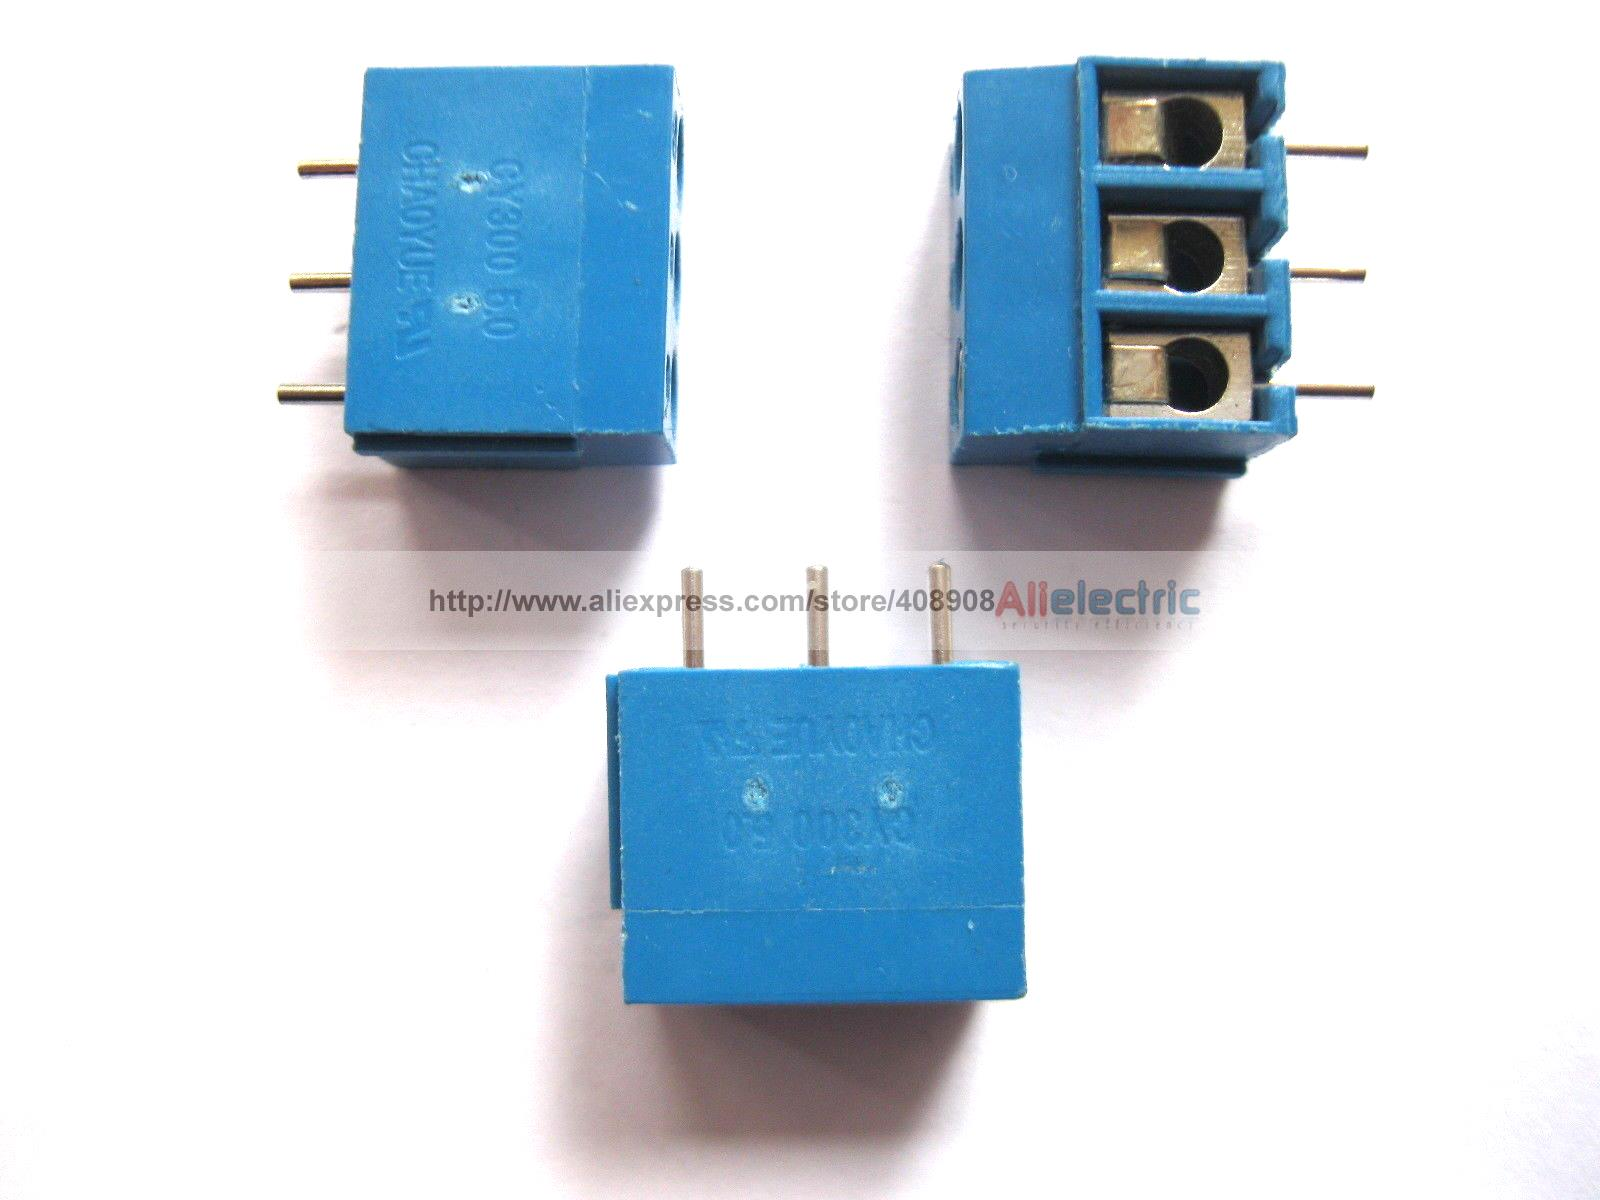 603pin 5.08mm Screw Terminal Block Connector Blue CY300